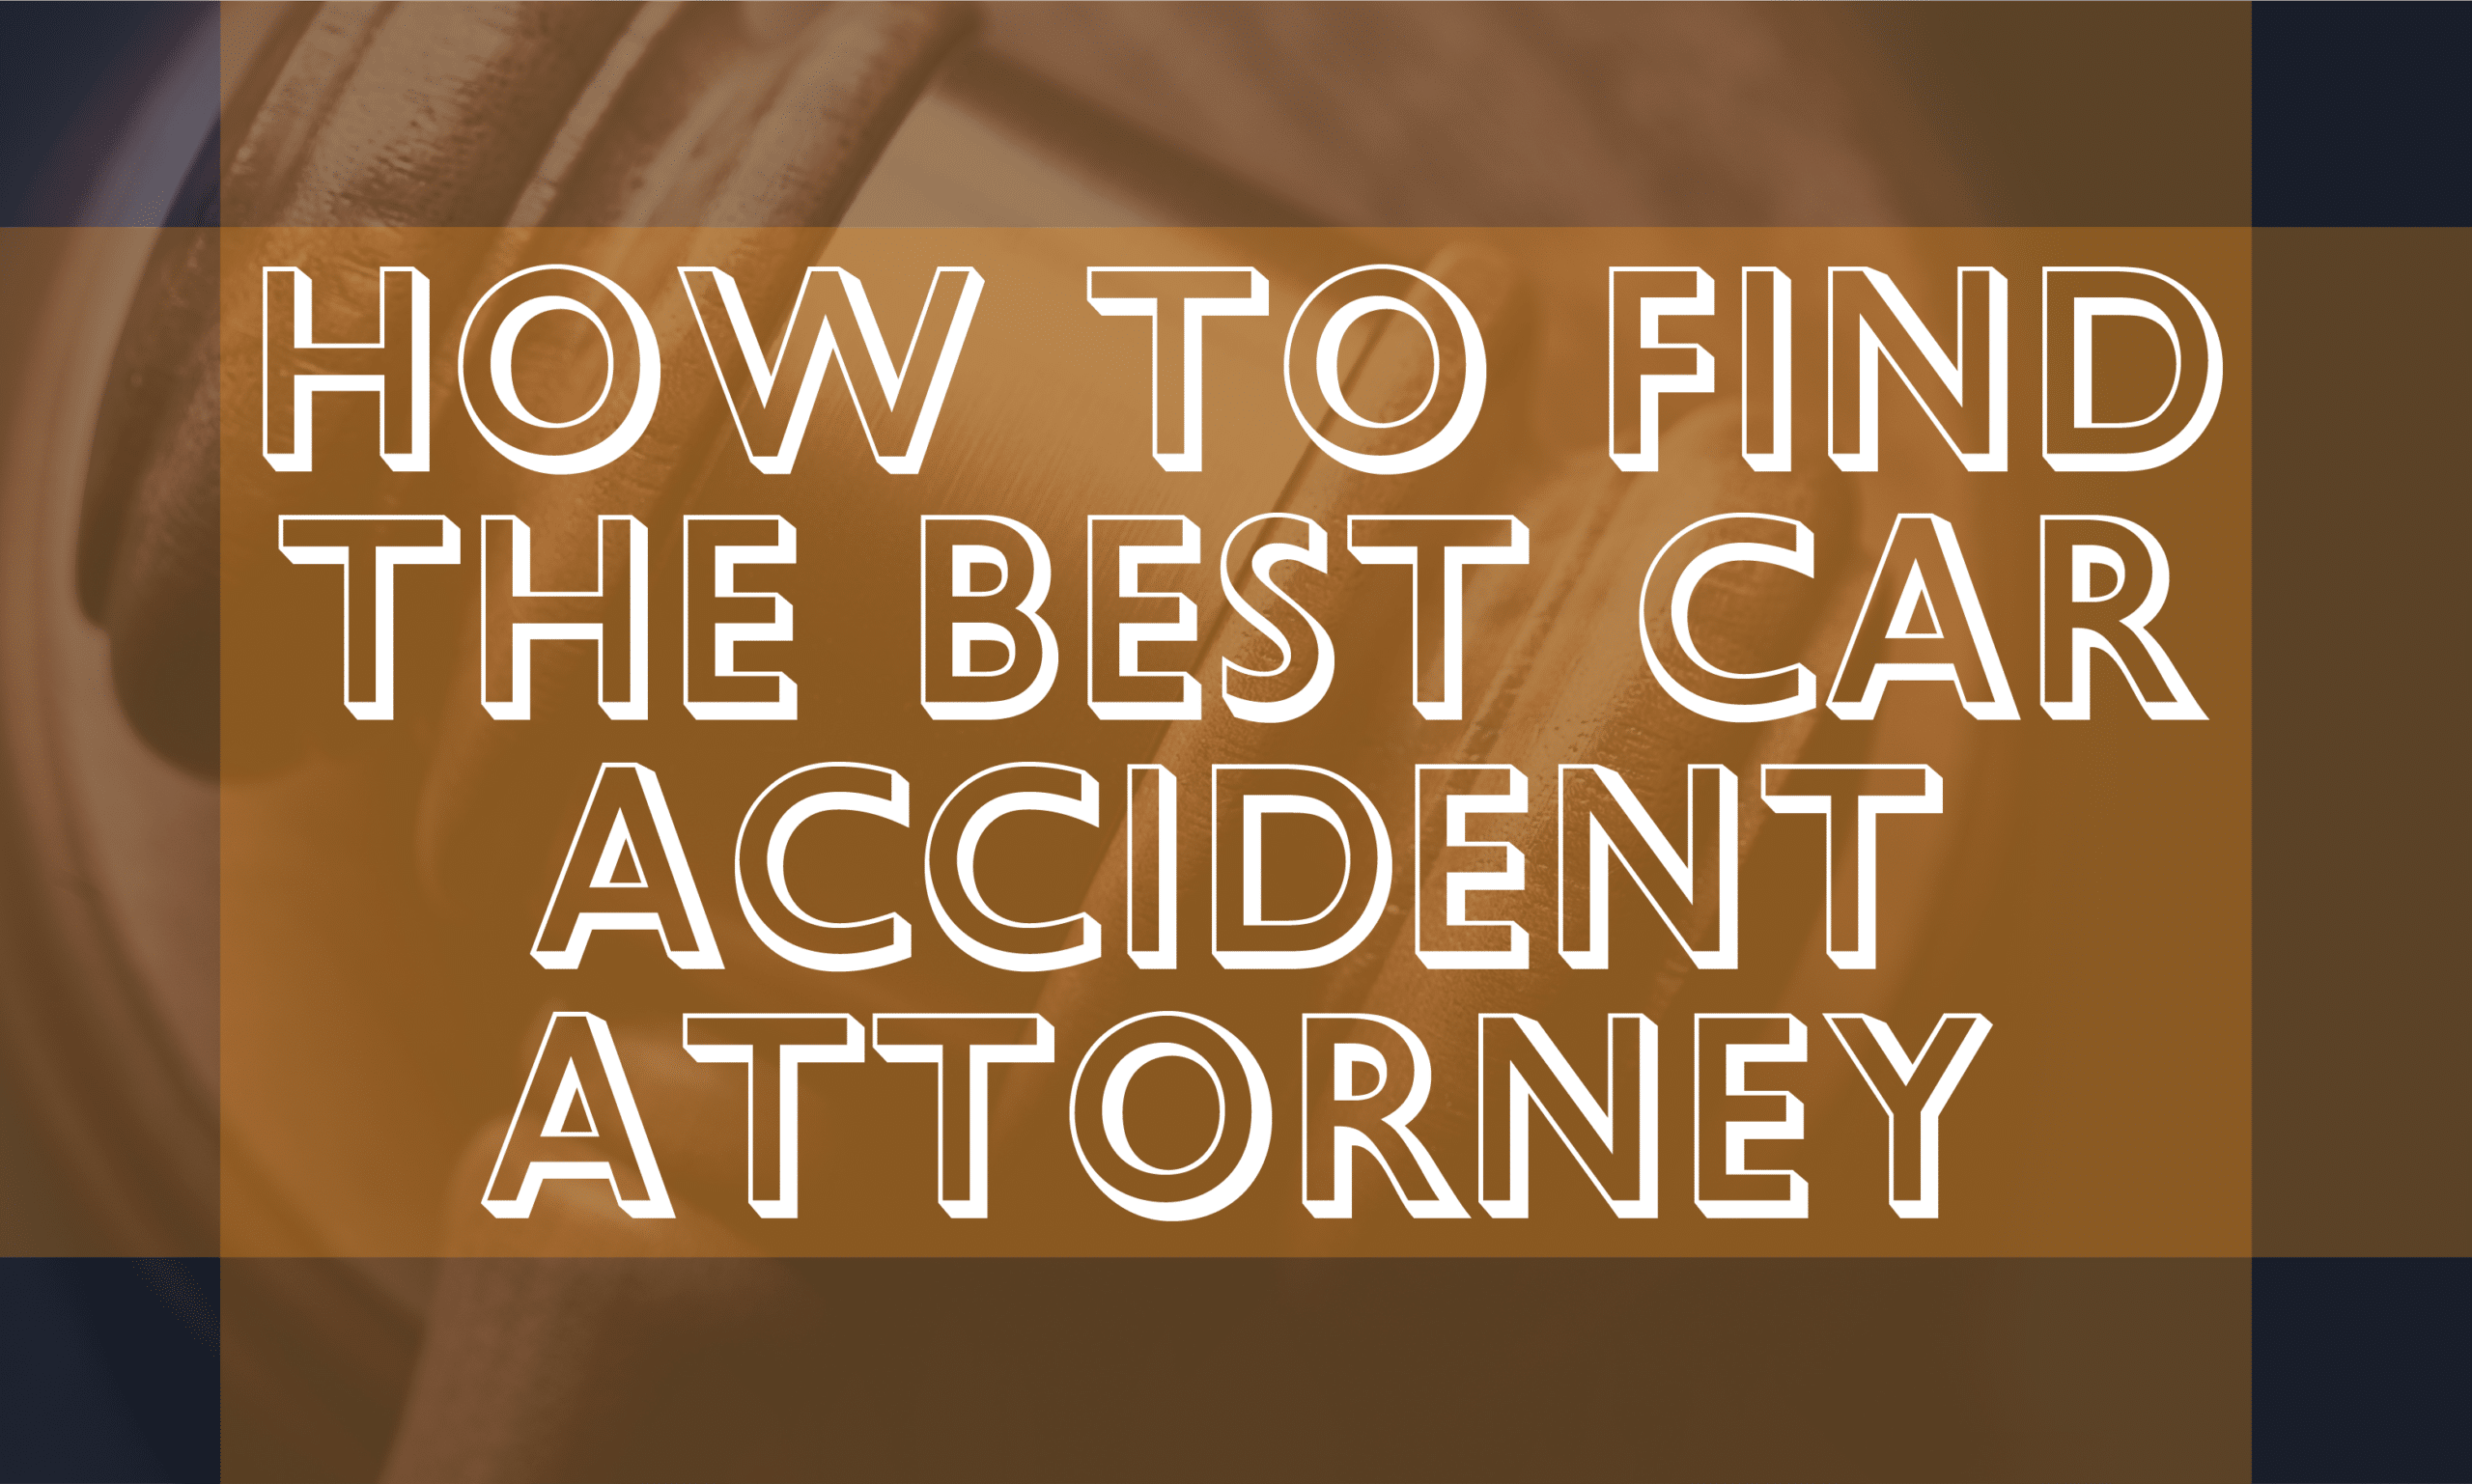 How to Find the Best Car Accident Attorney